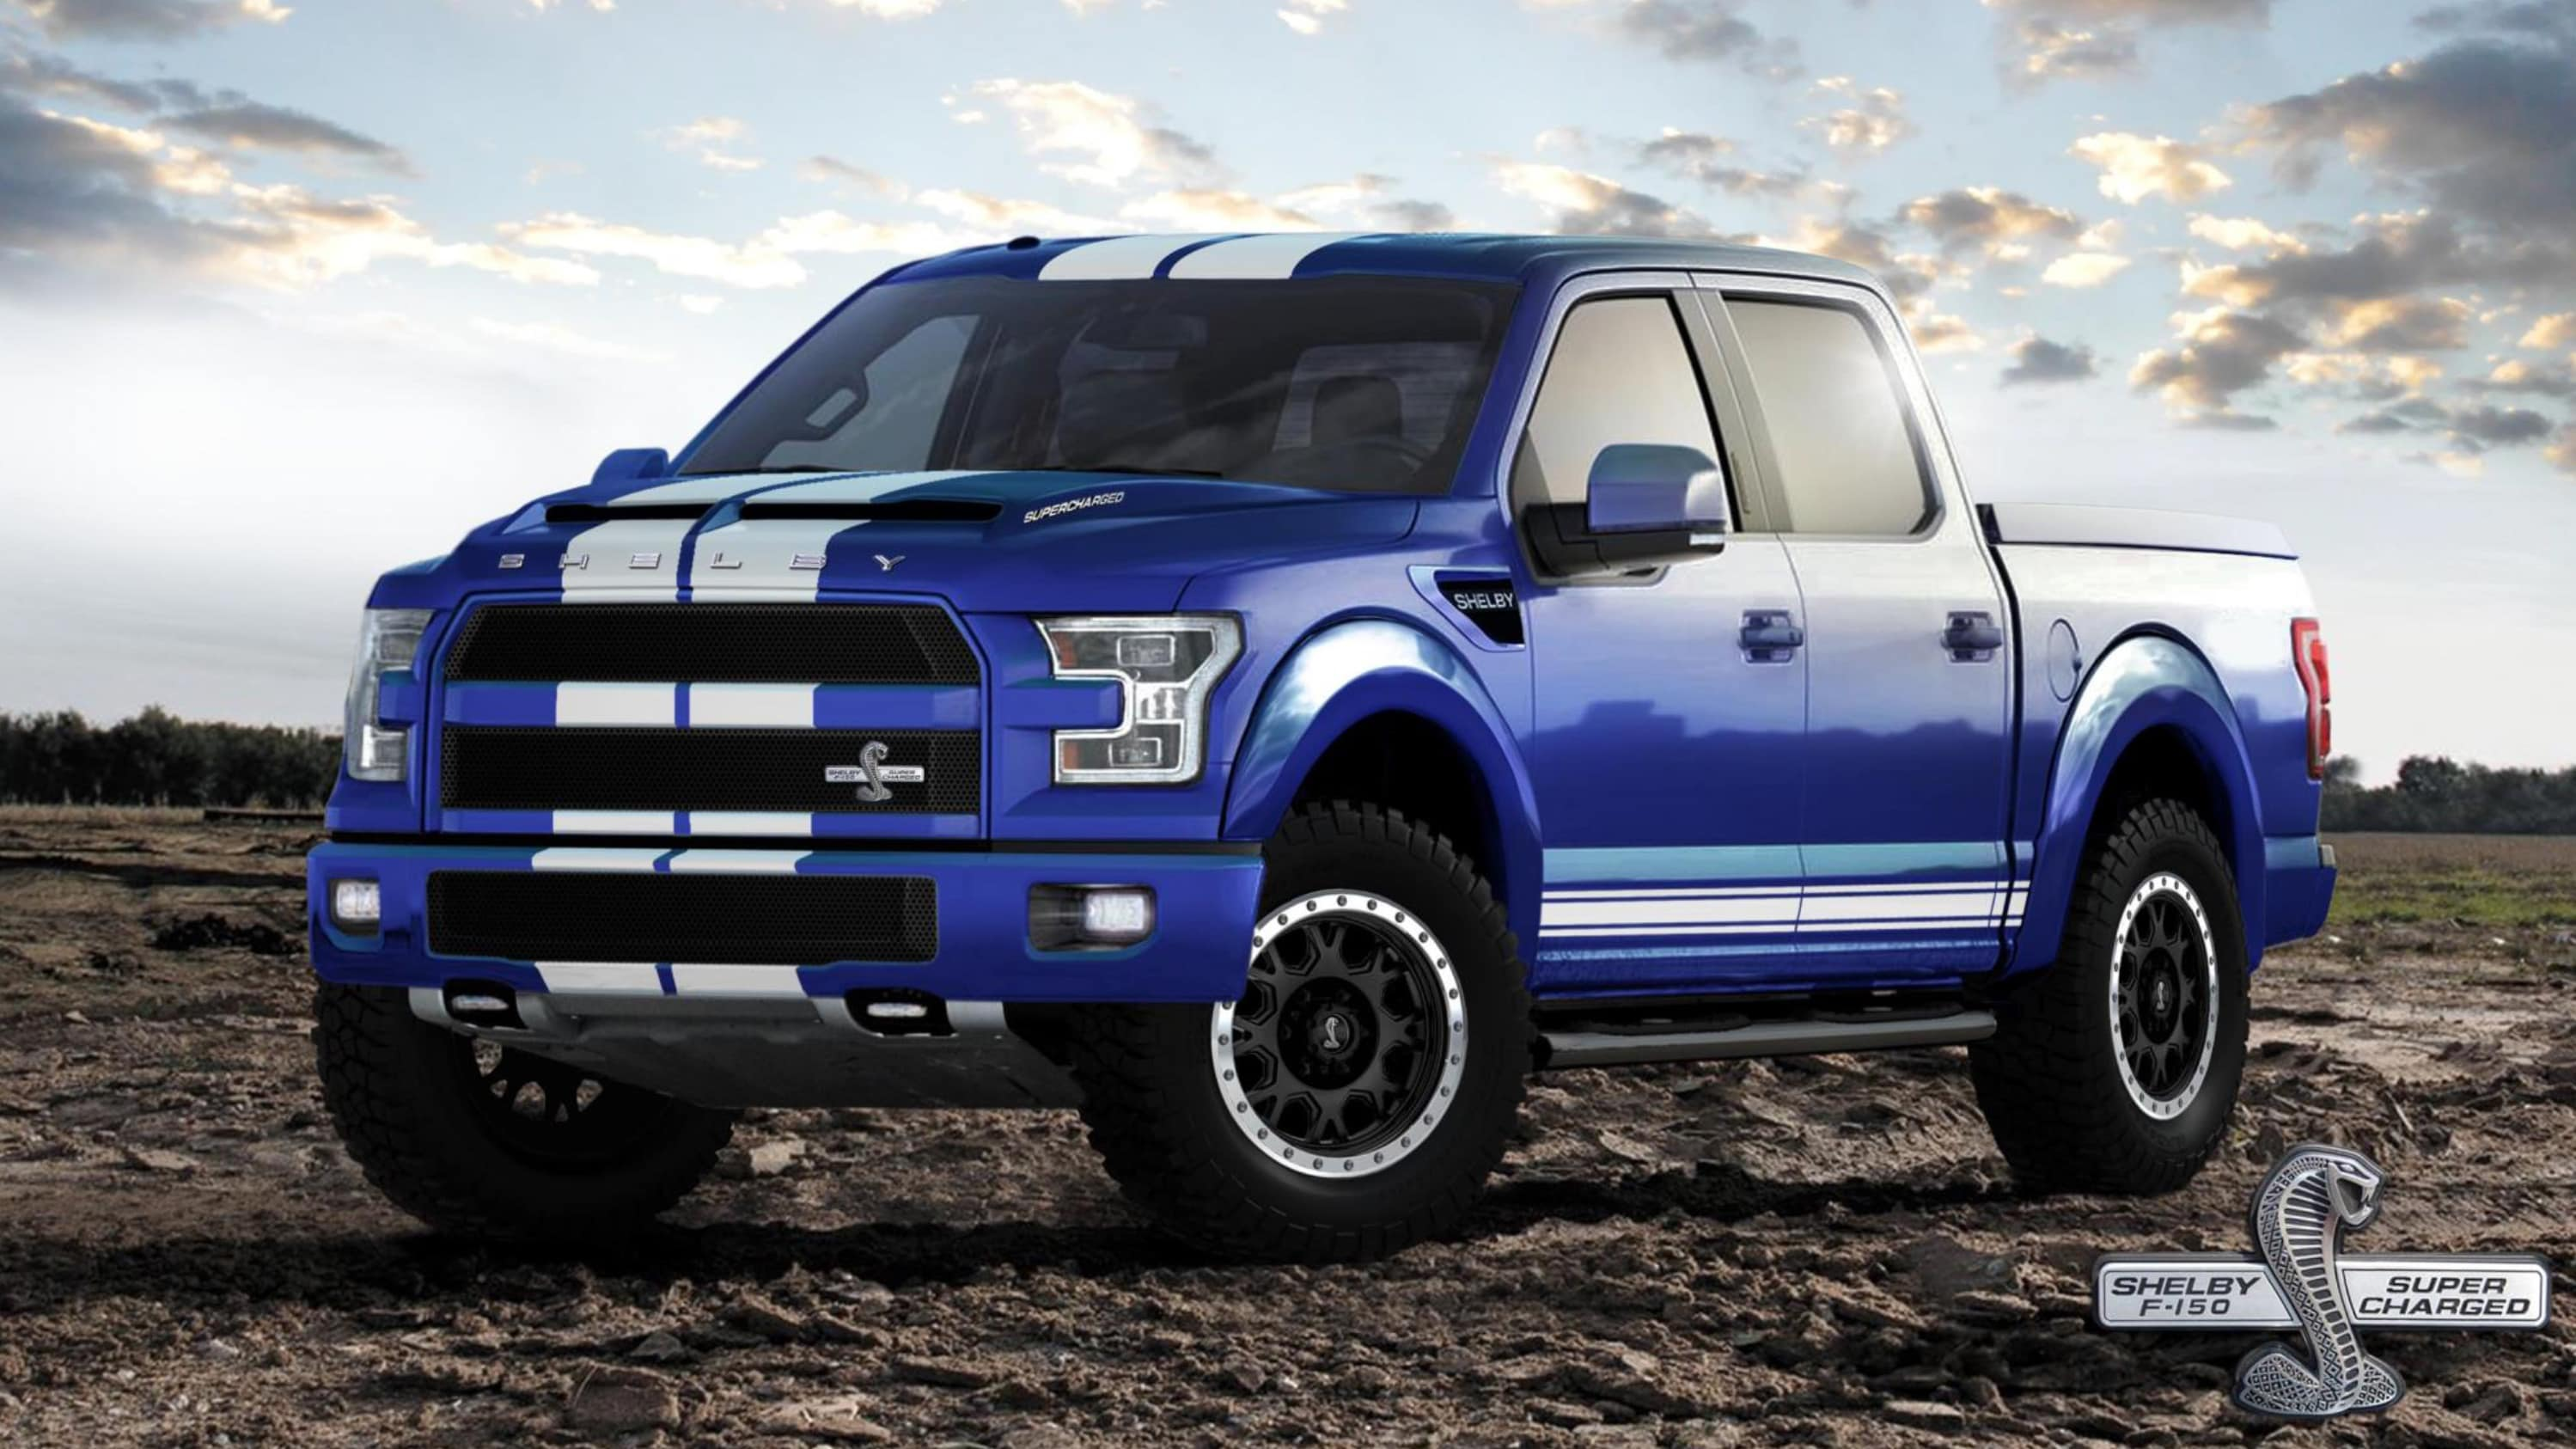 Shelby F150 For Sale >> Custom Shelby F 150 At Gullo Ford Of Conroe Serving The